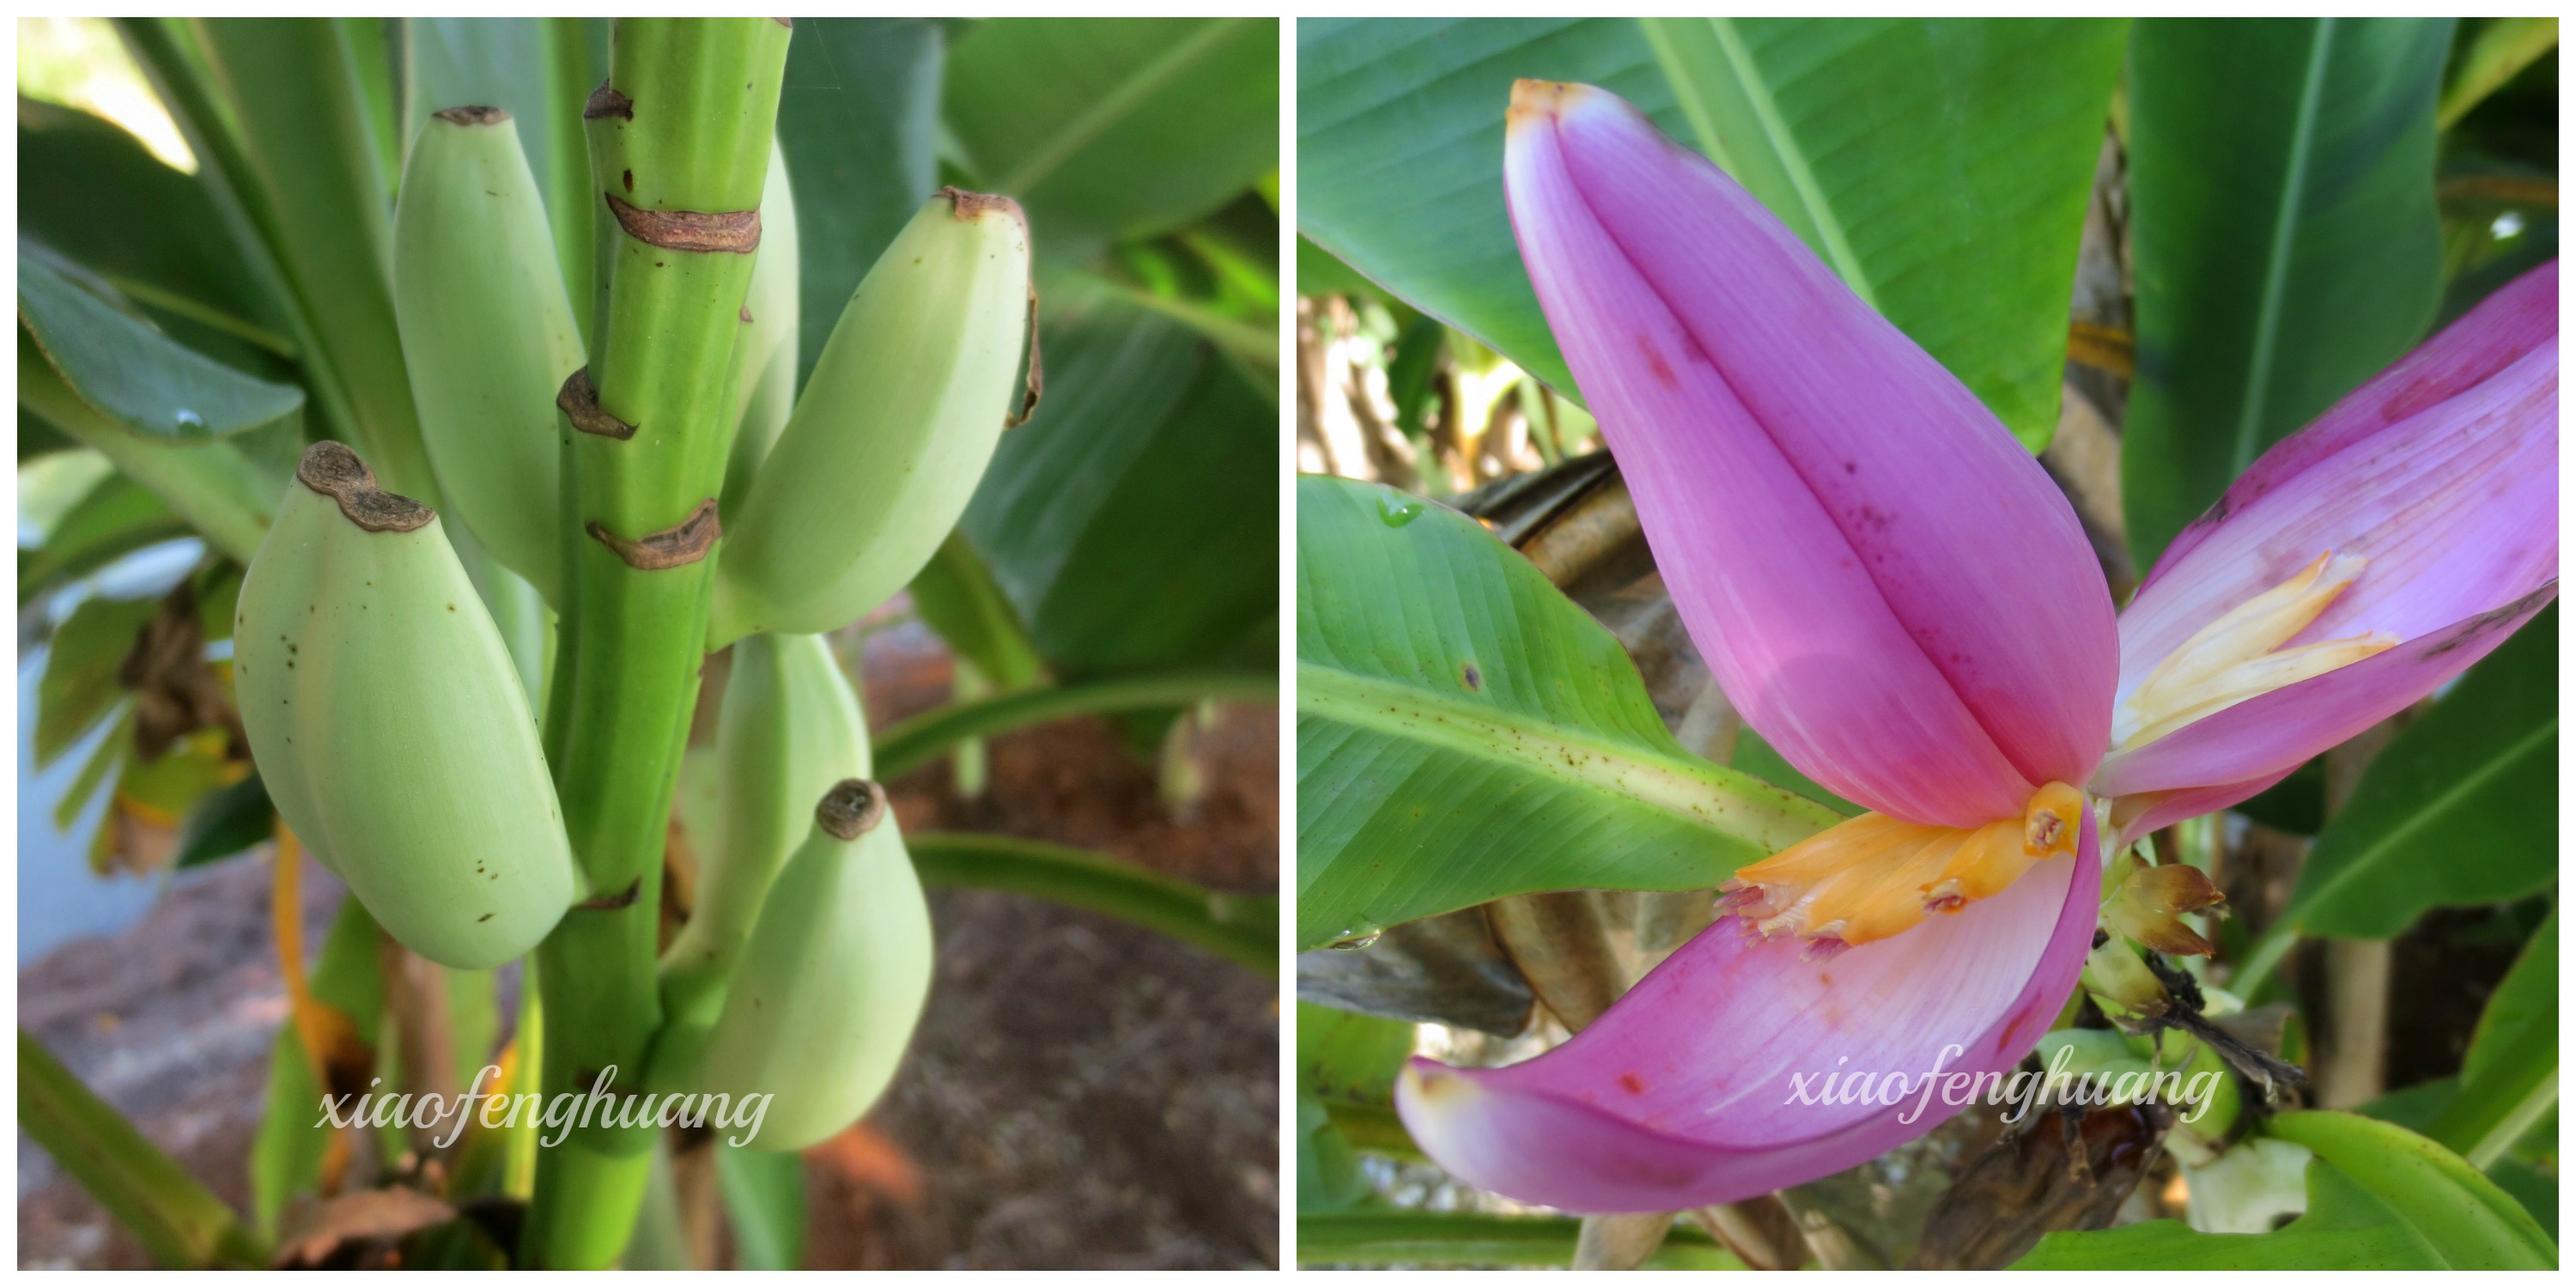 Left - Pisang Bunga/Musa Ornata Right - Flower of Pisang Bunga